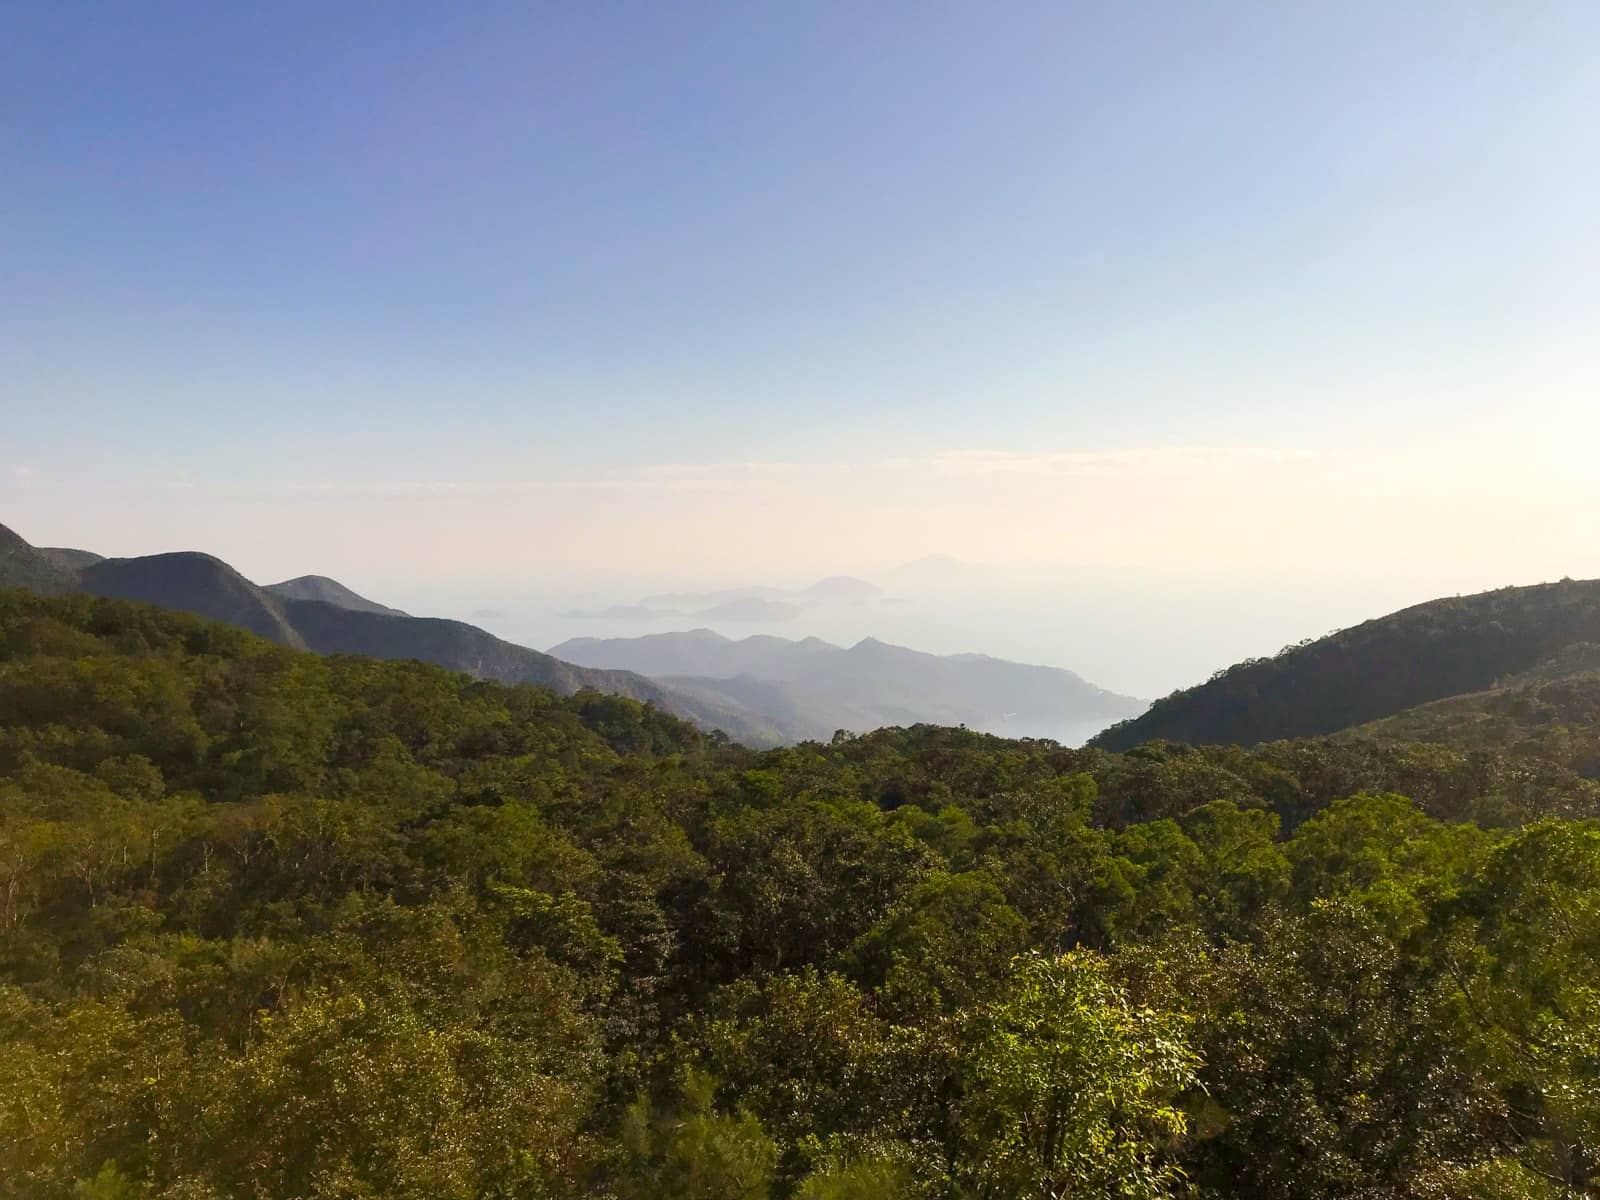 A view of blue sky and many trees, with some low mountains in the distance